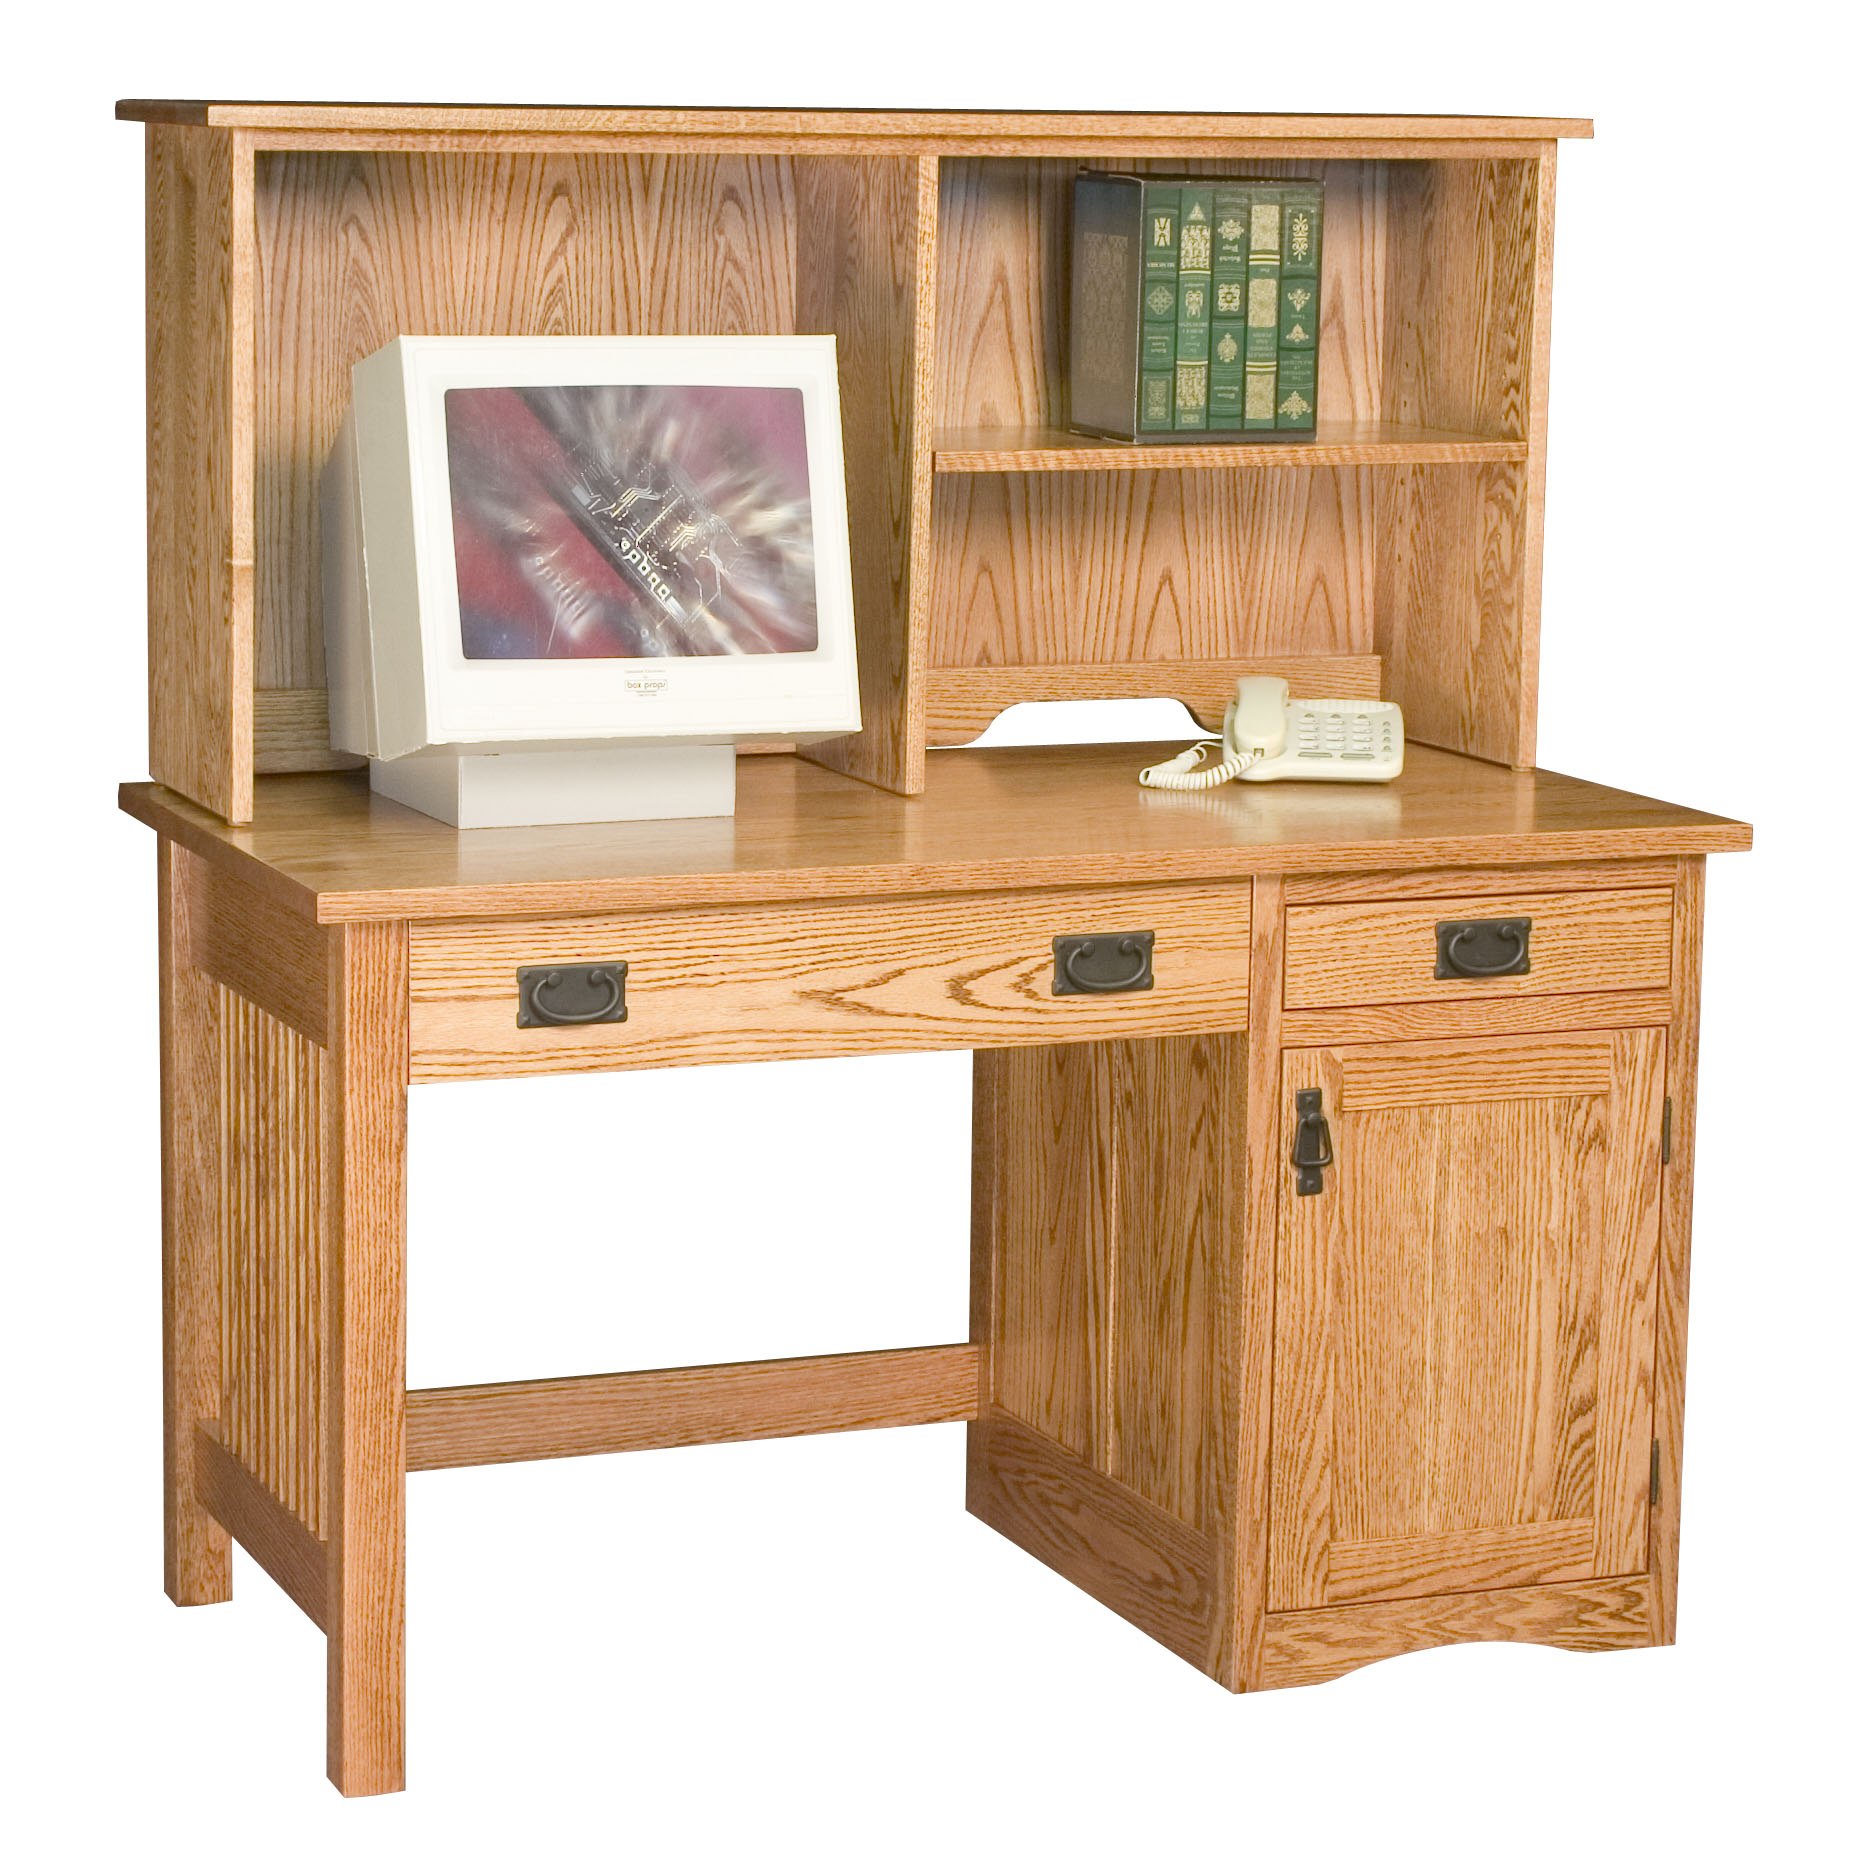 66 carls office furniture reno nevada 17 best for Affordable furniture reno nv